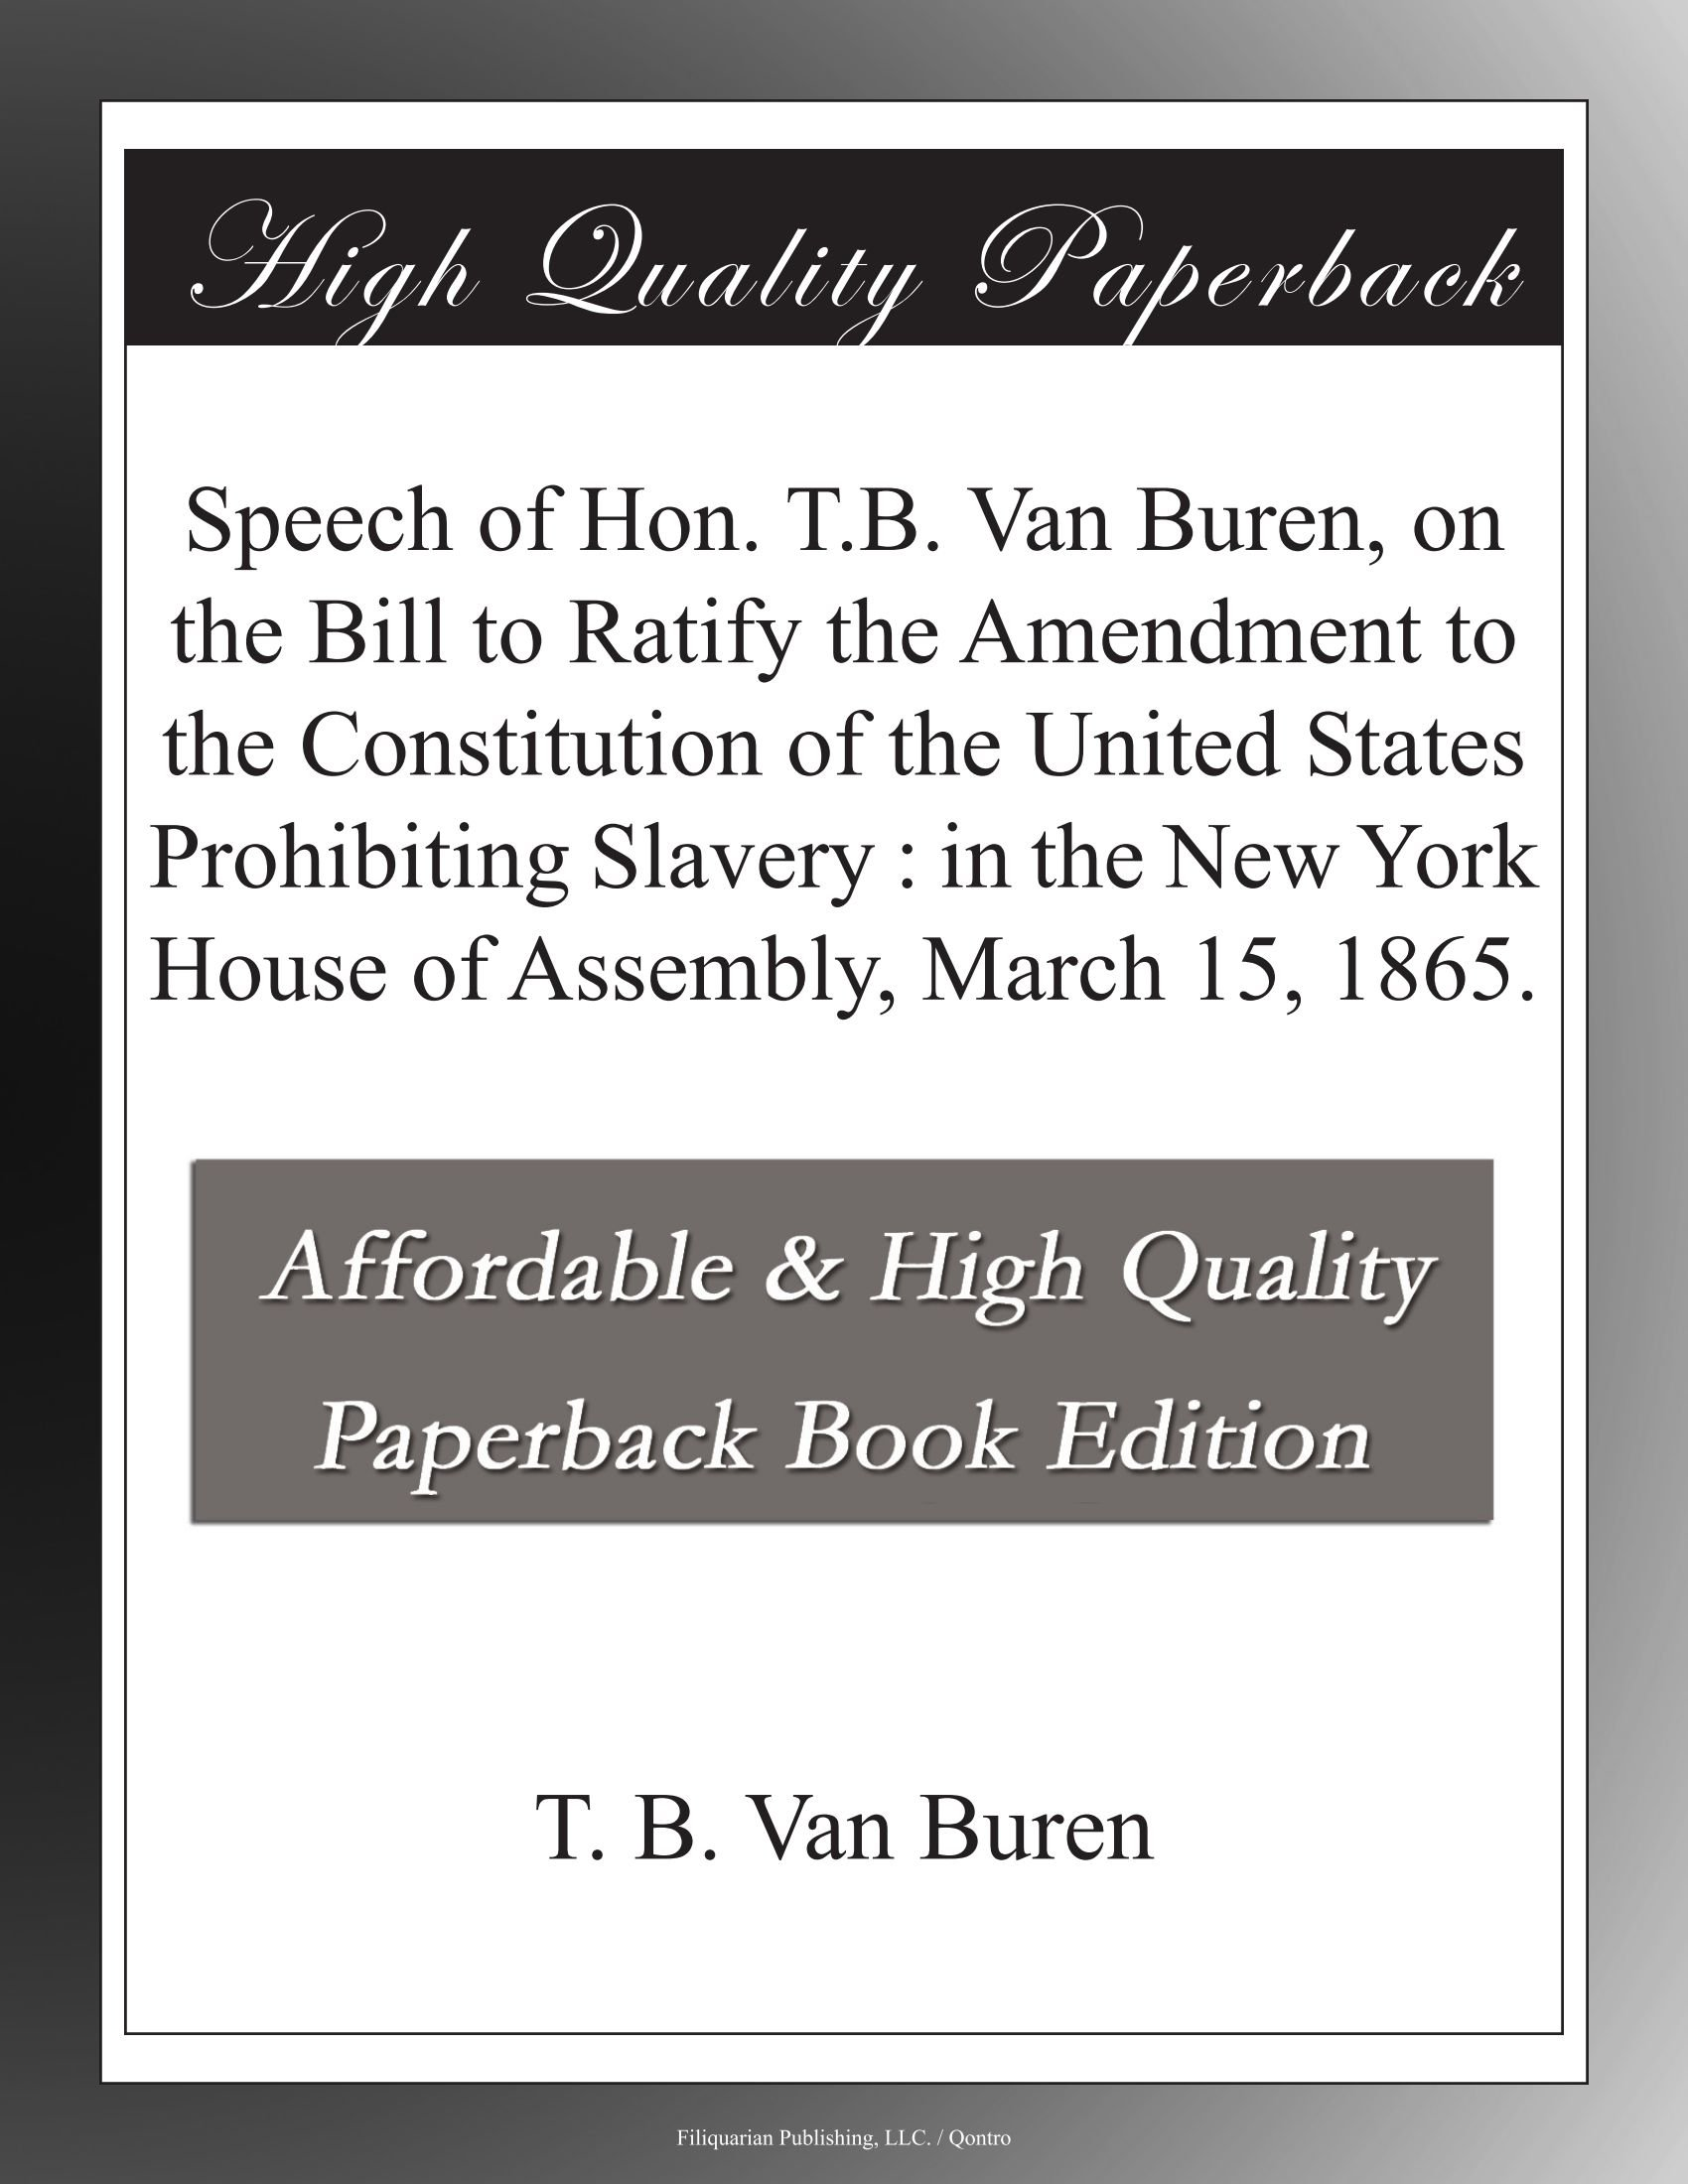 Download Speech of Hon. T.B. Van Buren, on the Bill to Ratify the Amendment to the Constitution of the United States Prohibiting Slavery : in the New York House of Assembly, March 15, 1865. ebook